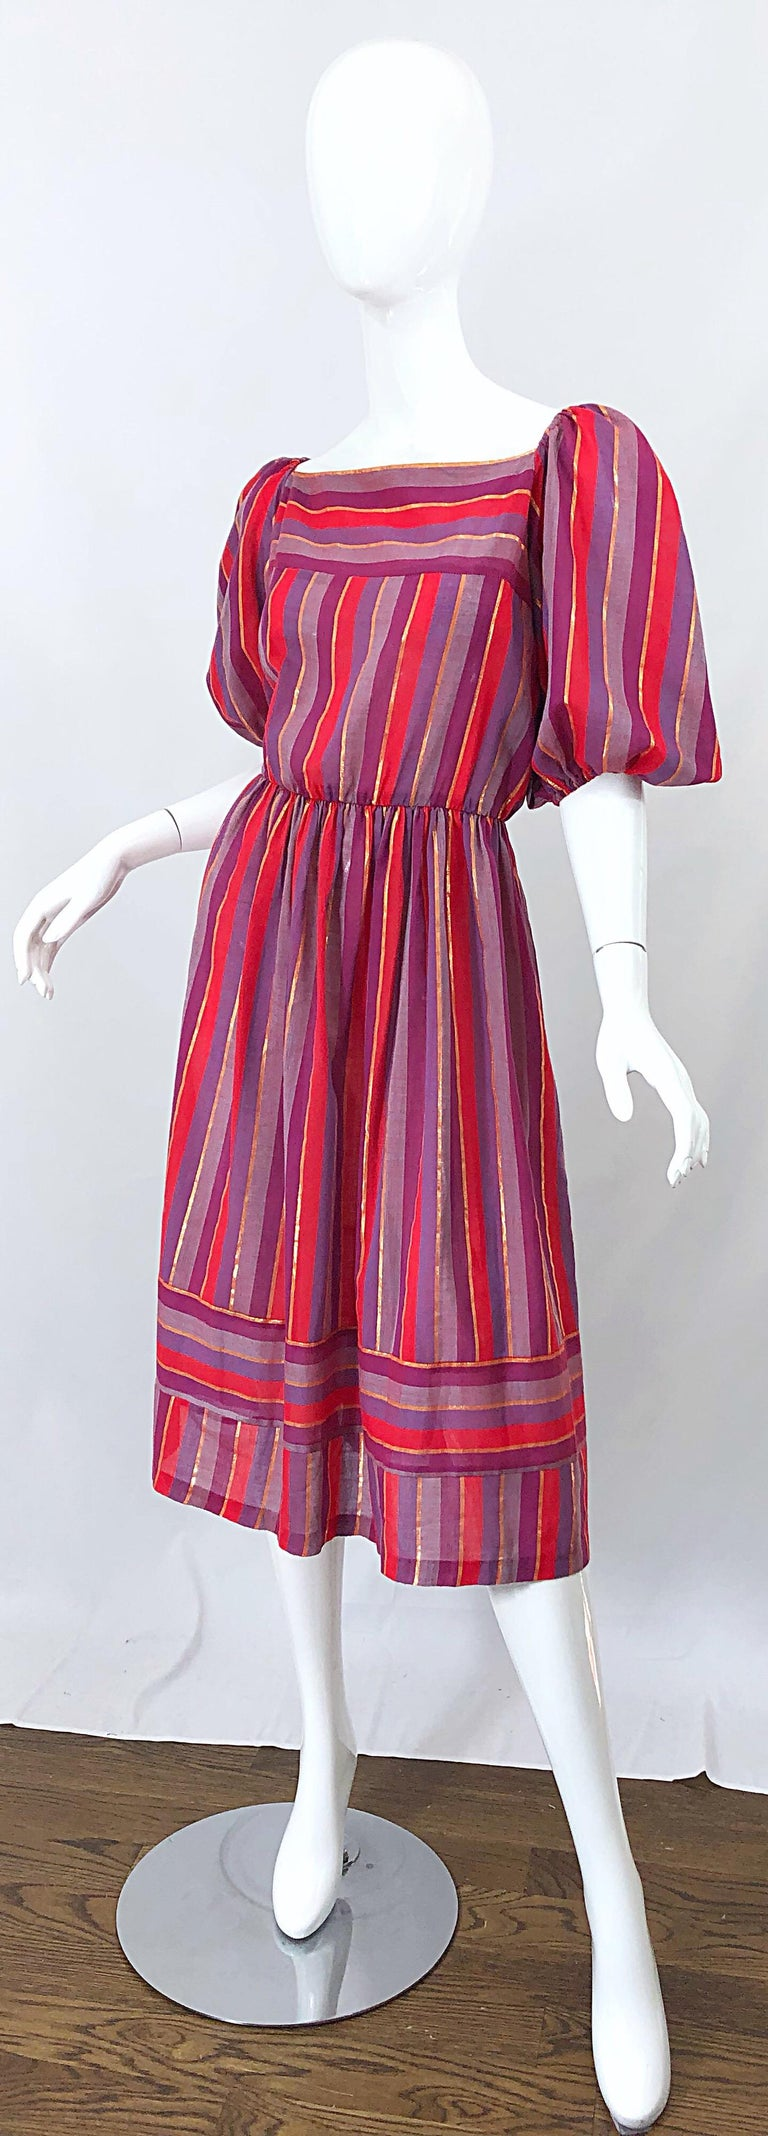 1970s Boho Chic Red + Purple + Gold Striped Cotton Voile 70s Vintage Dress For Sale 1